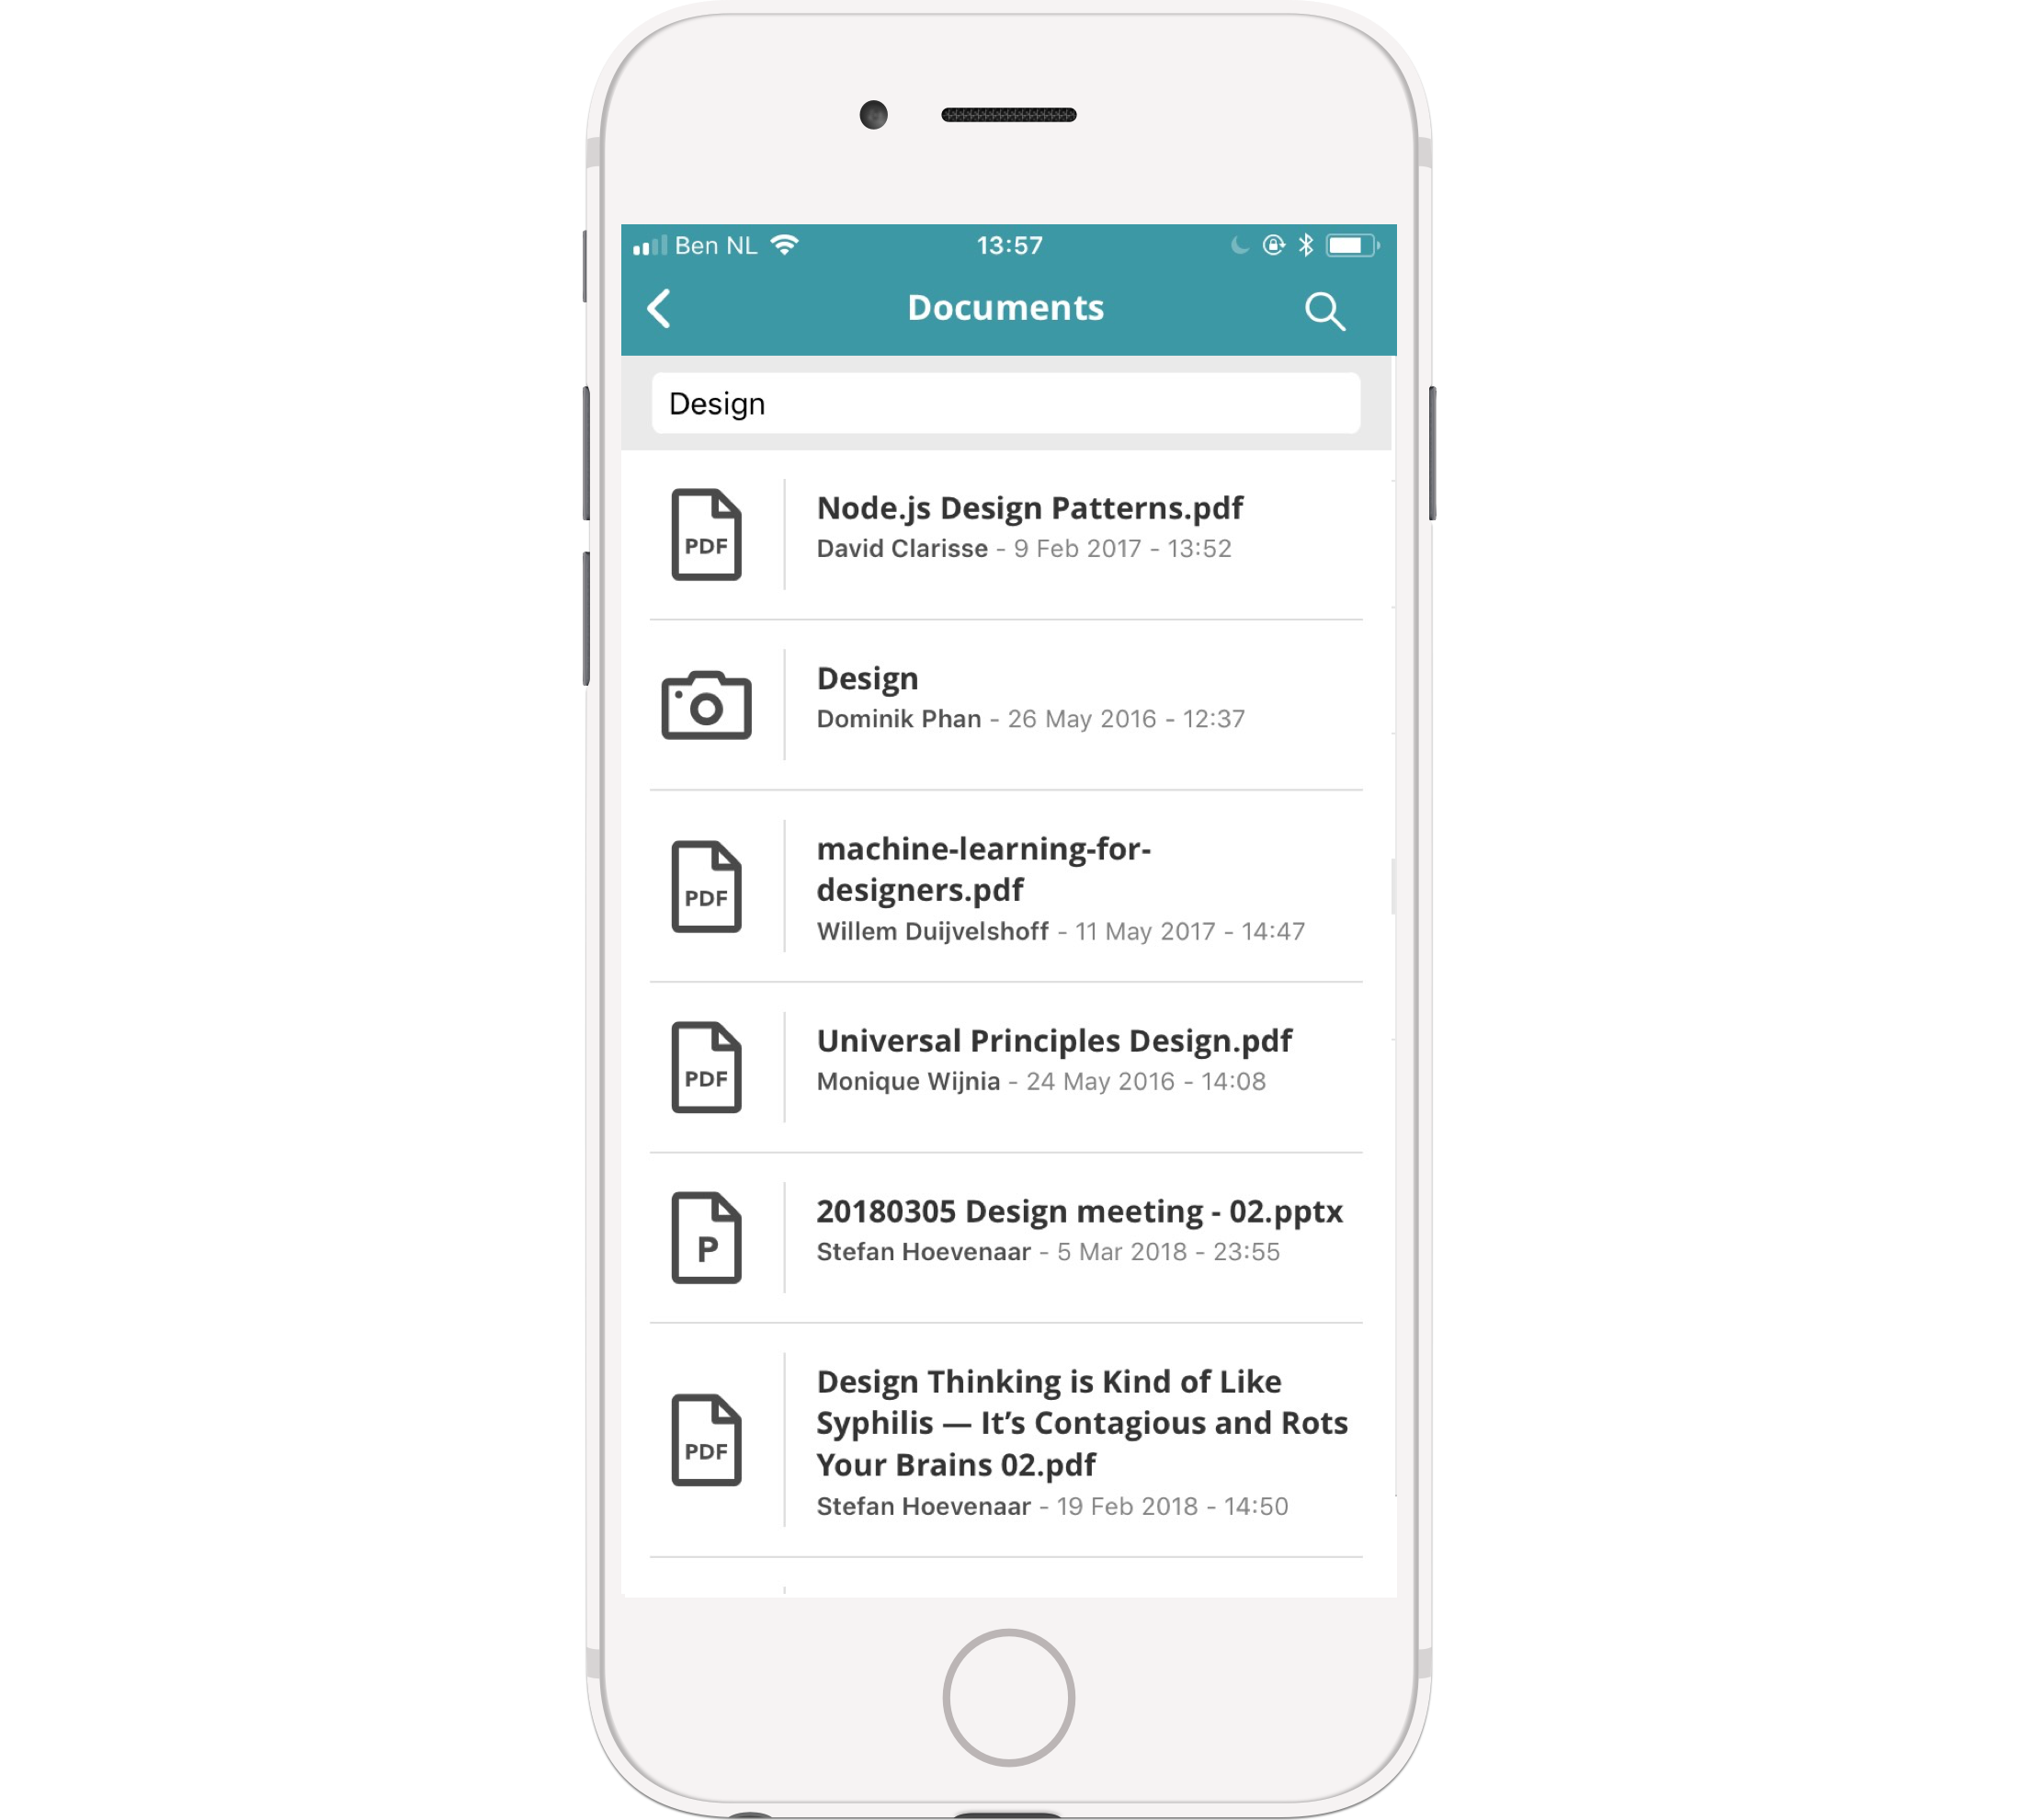 No need to download anything to be able to read a document on the go: just check it out in the app.